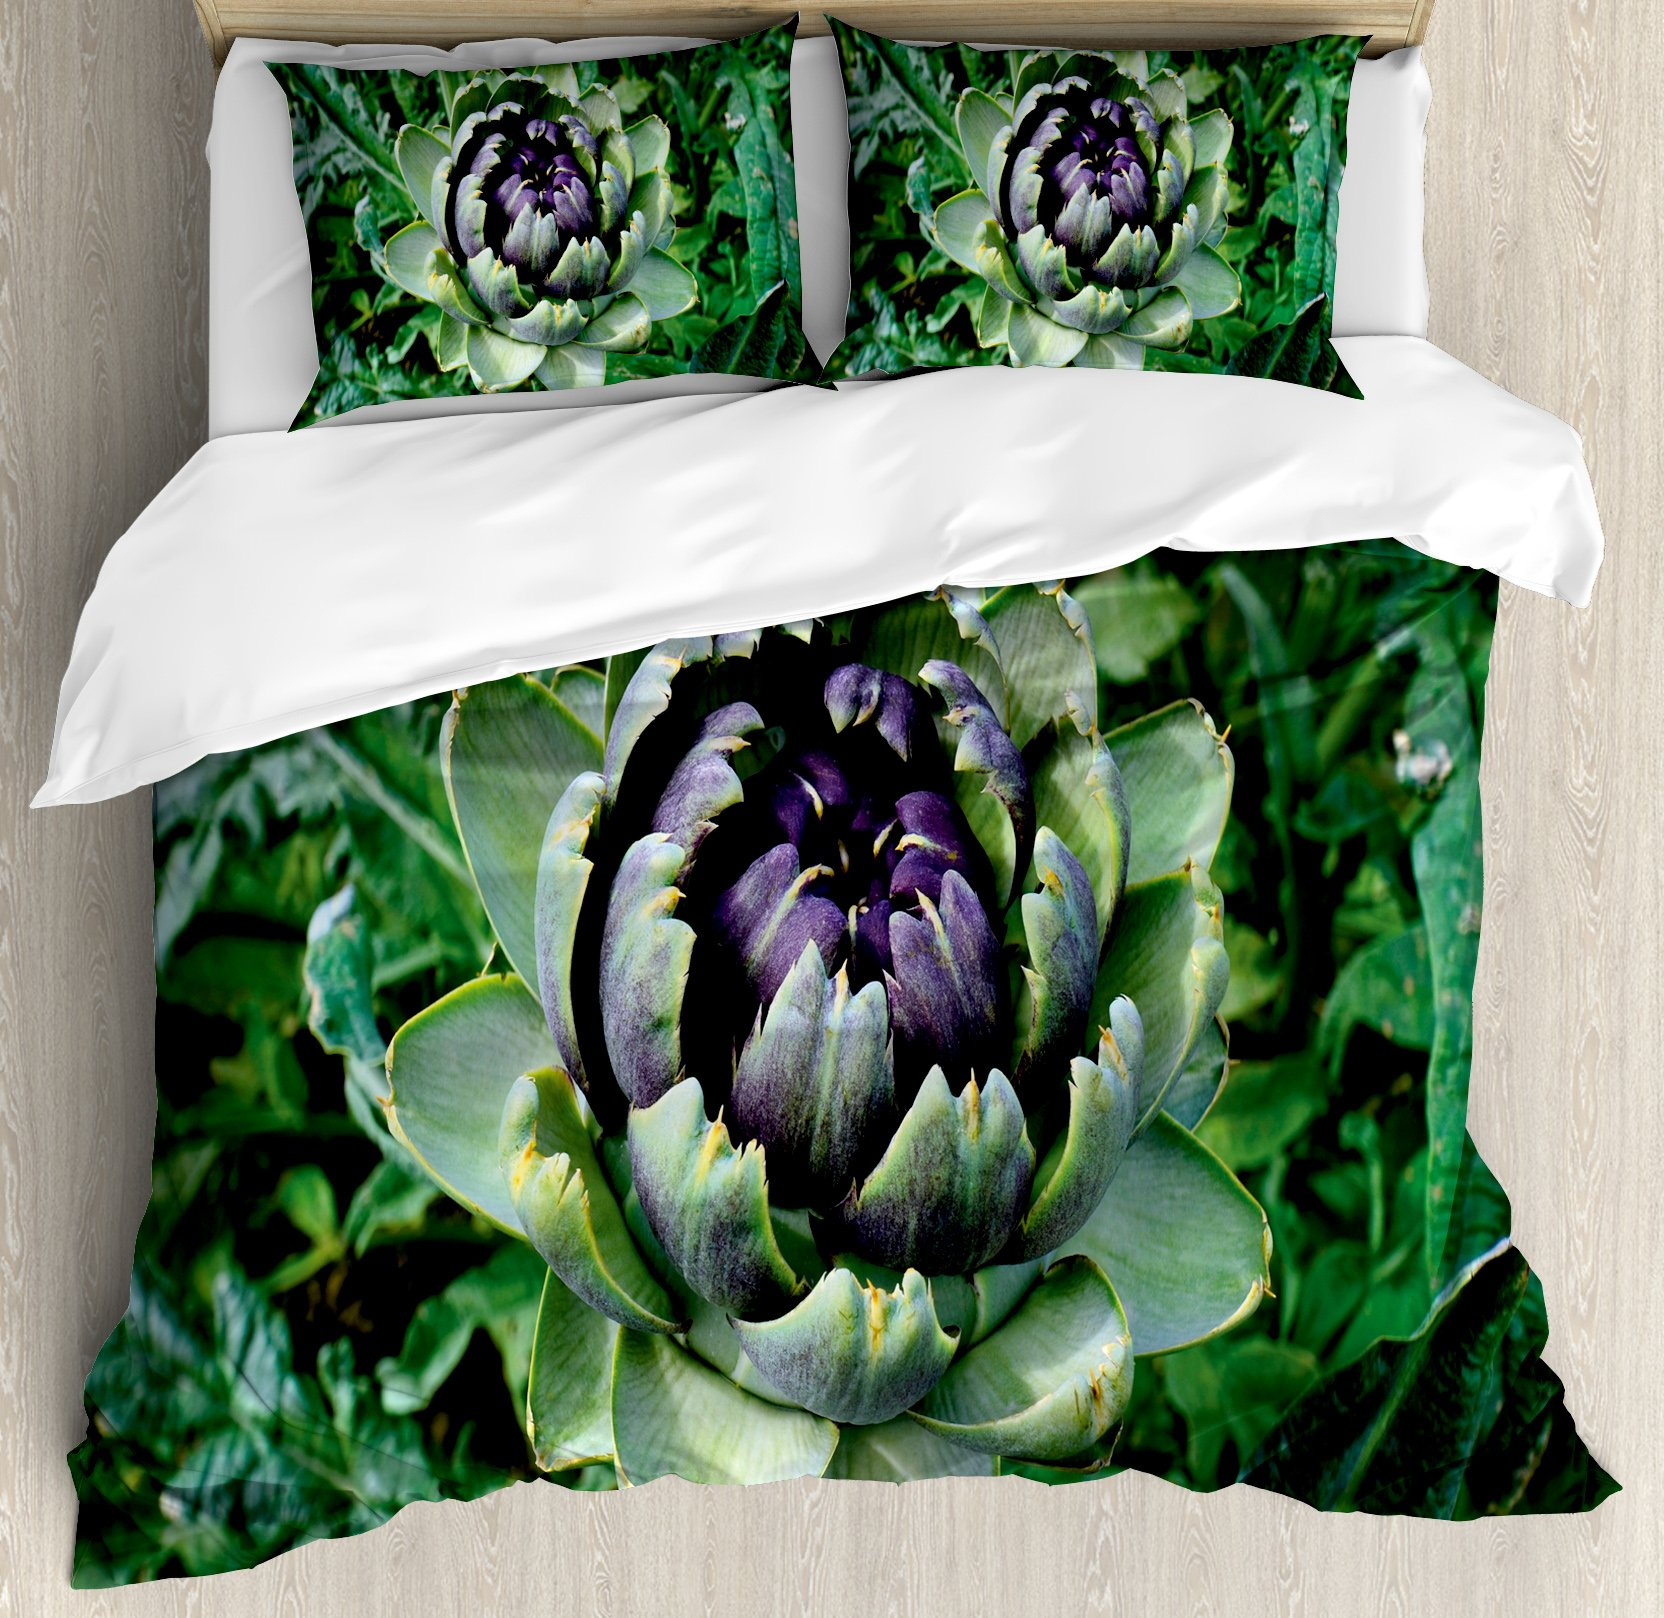 Artichoke Queen Size Duvet Cover Set by Ambesonne, Photograph of Blooming Vegetable Agriculture Nature Artwork Print, Decorative 3 Piece Bedding Set with 2 Pillow Shams, Fern Green and Purple